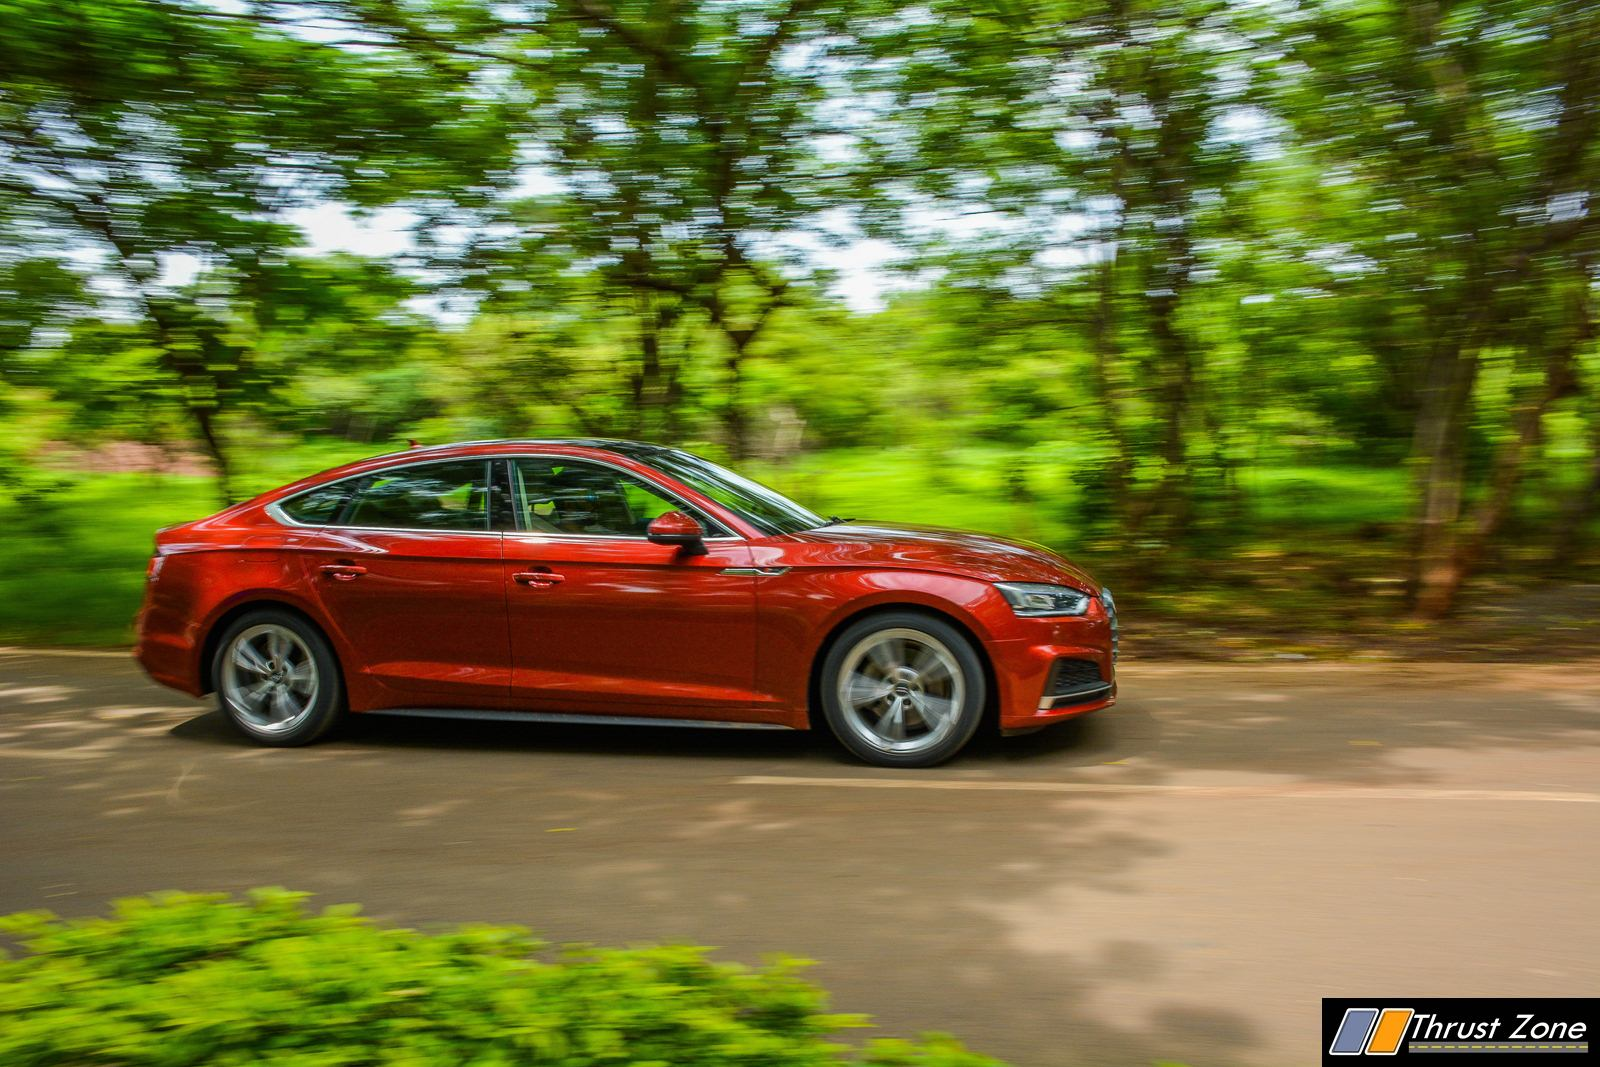 https://www.thrustzone.com/wp-content/uploads/2018/08/2018-Audi-A5-Diesel-India-Review-31.jpg